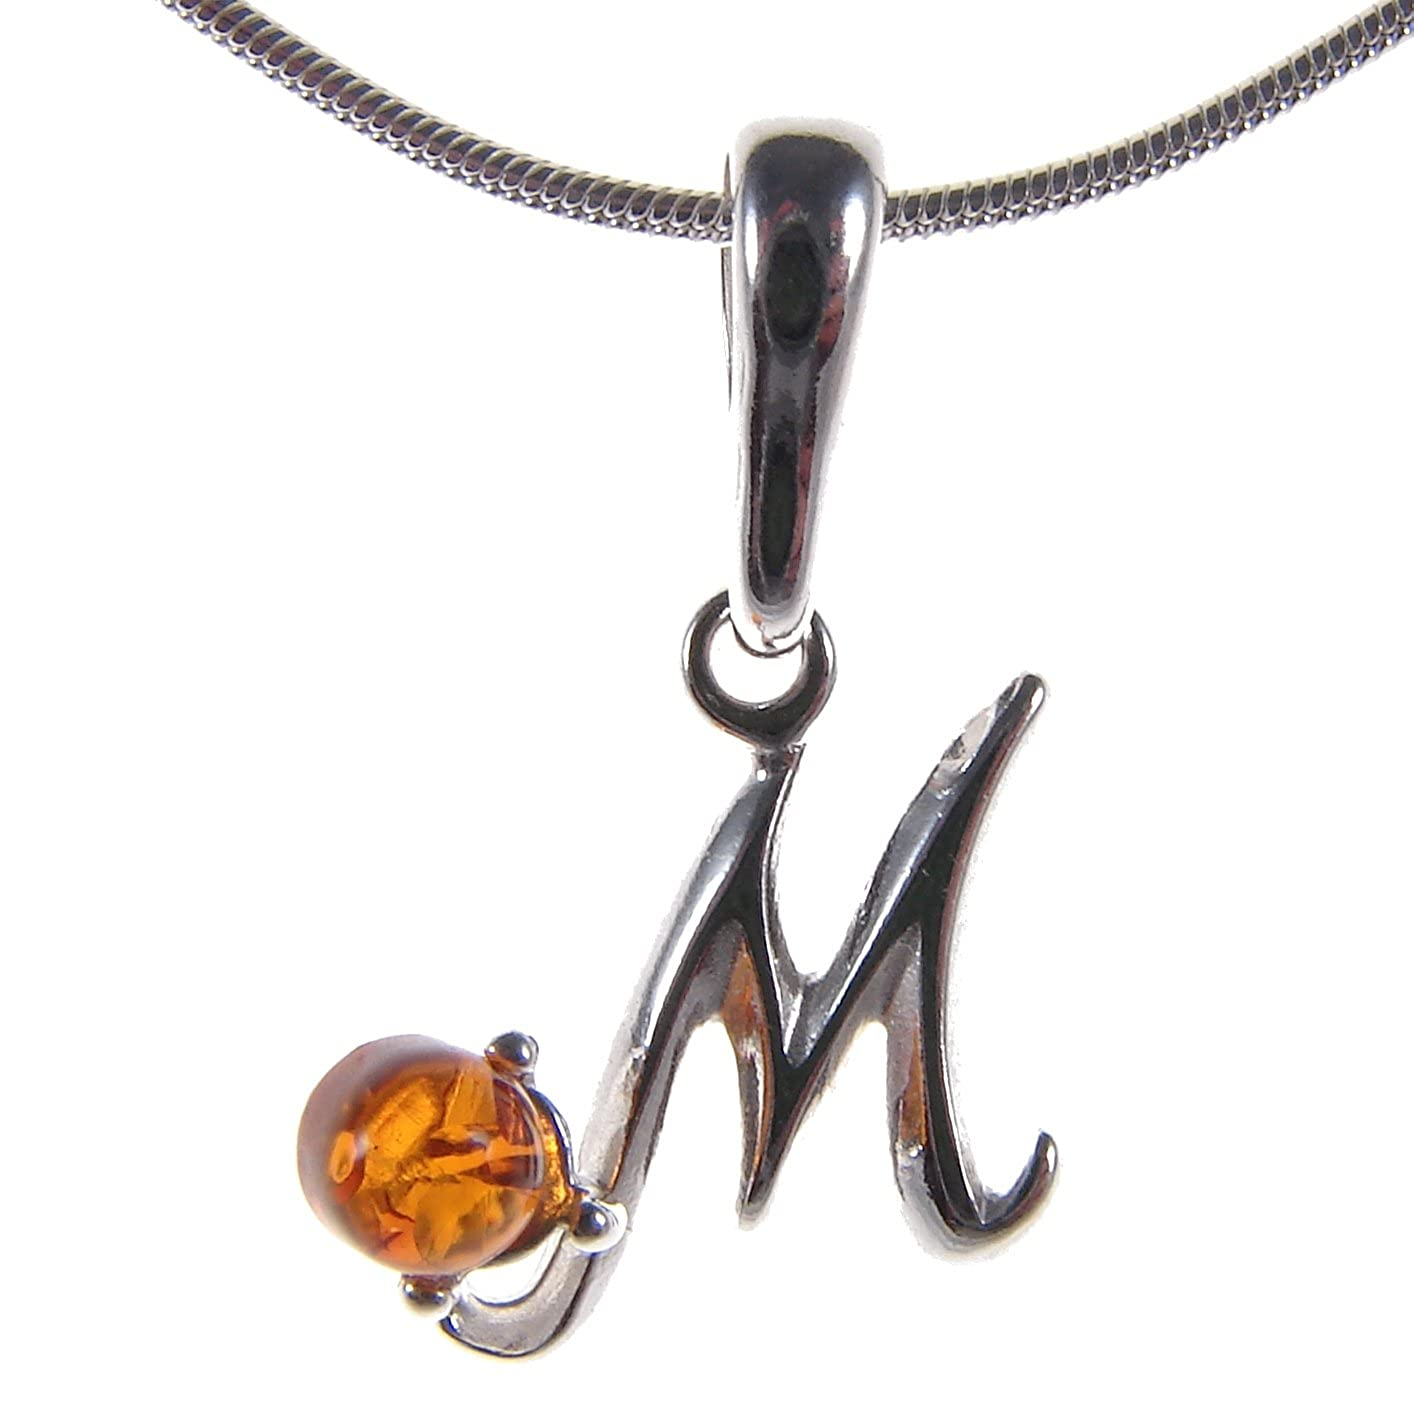 BALTIC AMBER AND STERLING SILVER 925 ALPHABET LETTER M PENDANT NECKLACE 10 12 14 16 18 20 22 24 40 1mm ITALIAN SNAKE CHAIN